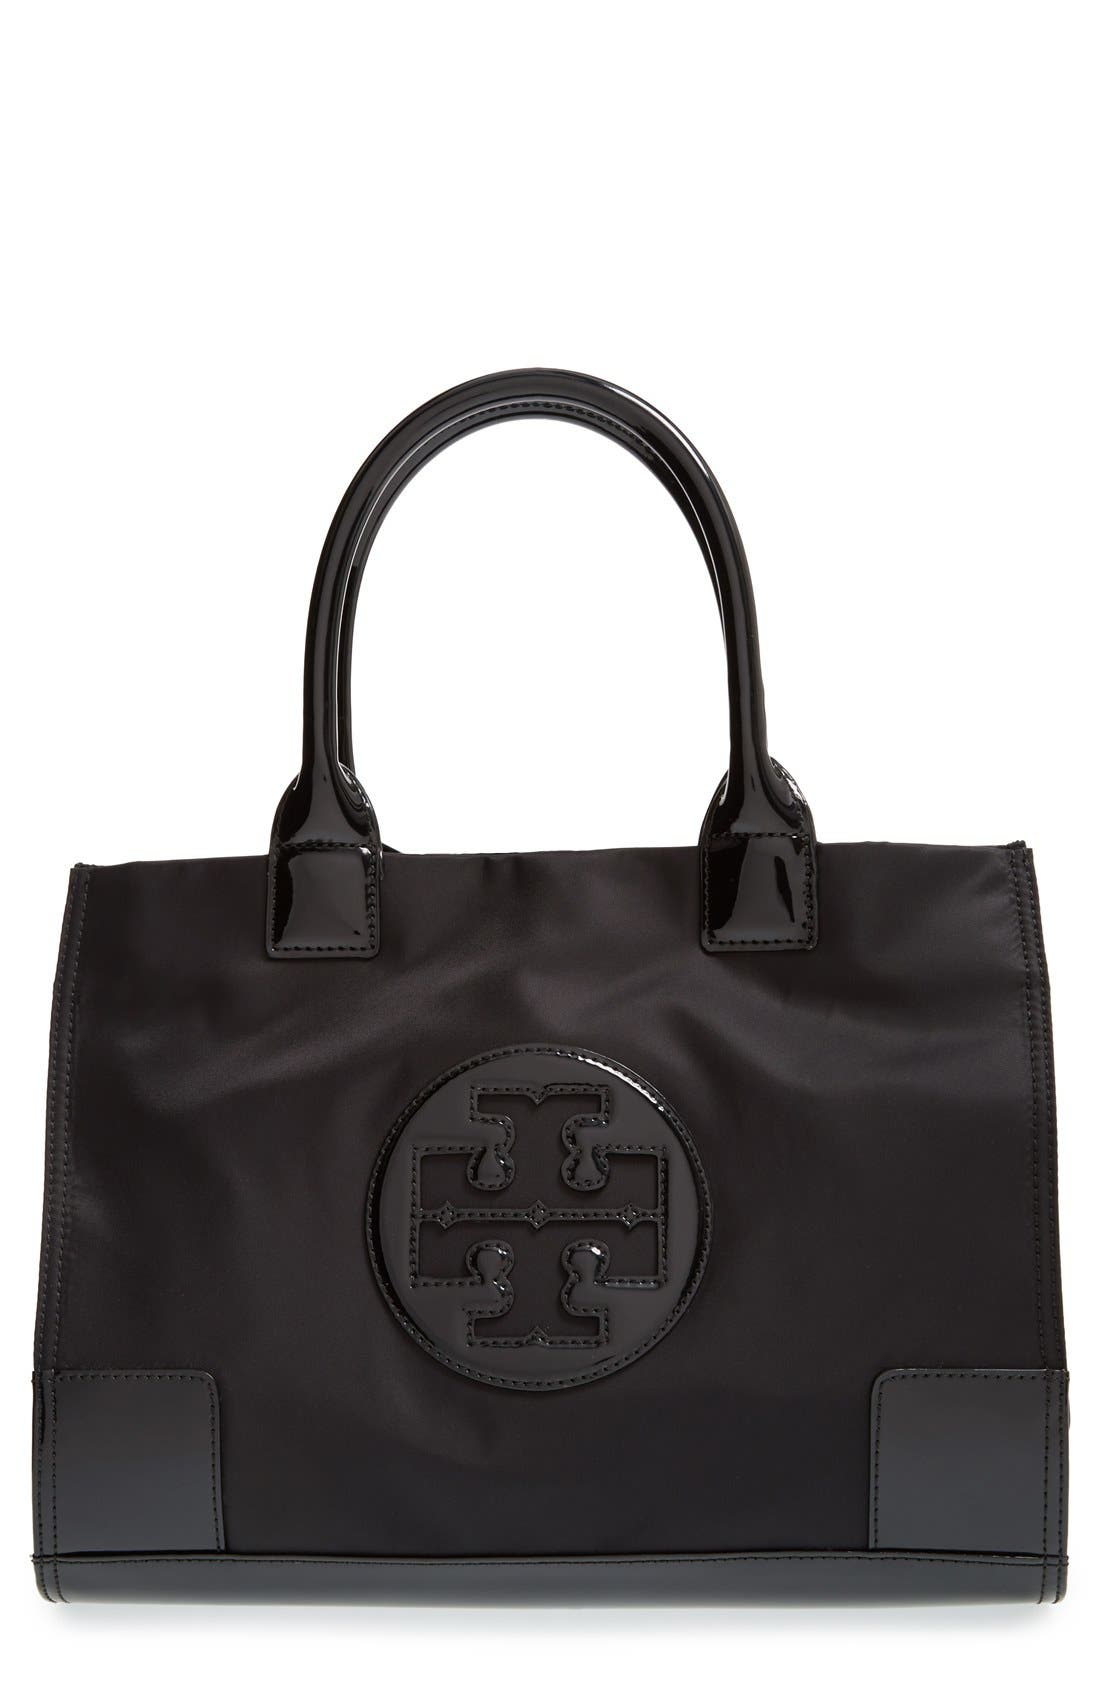 Tory Burch 'Mini Ella' Nylon Tote